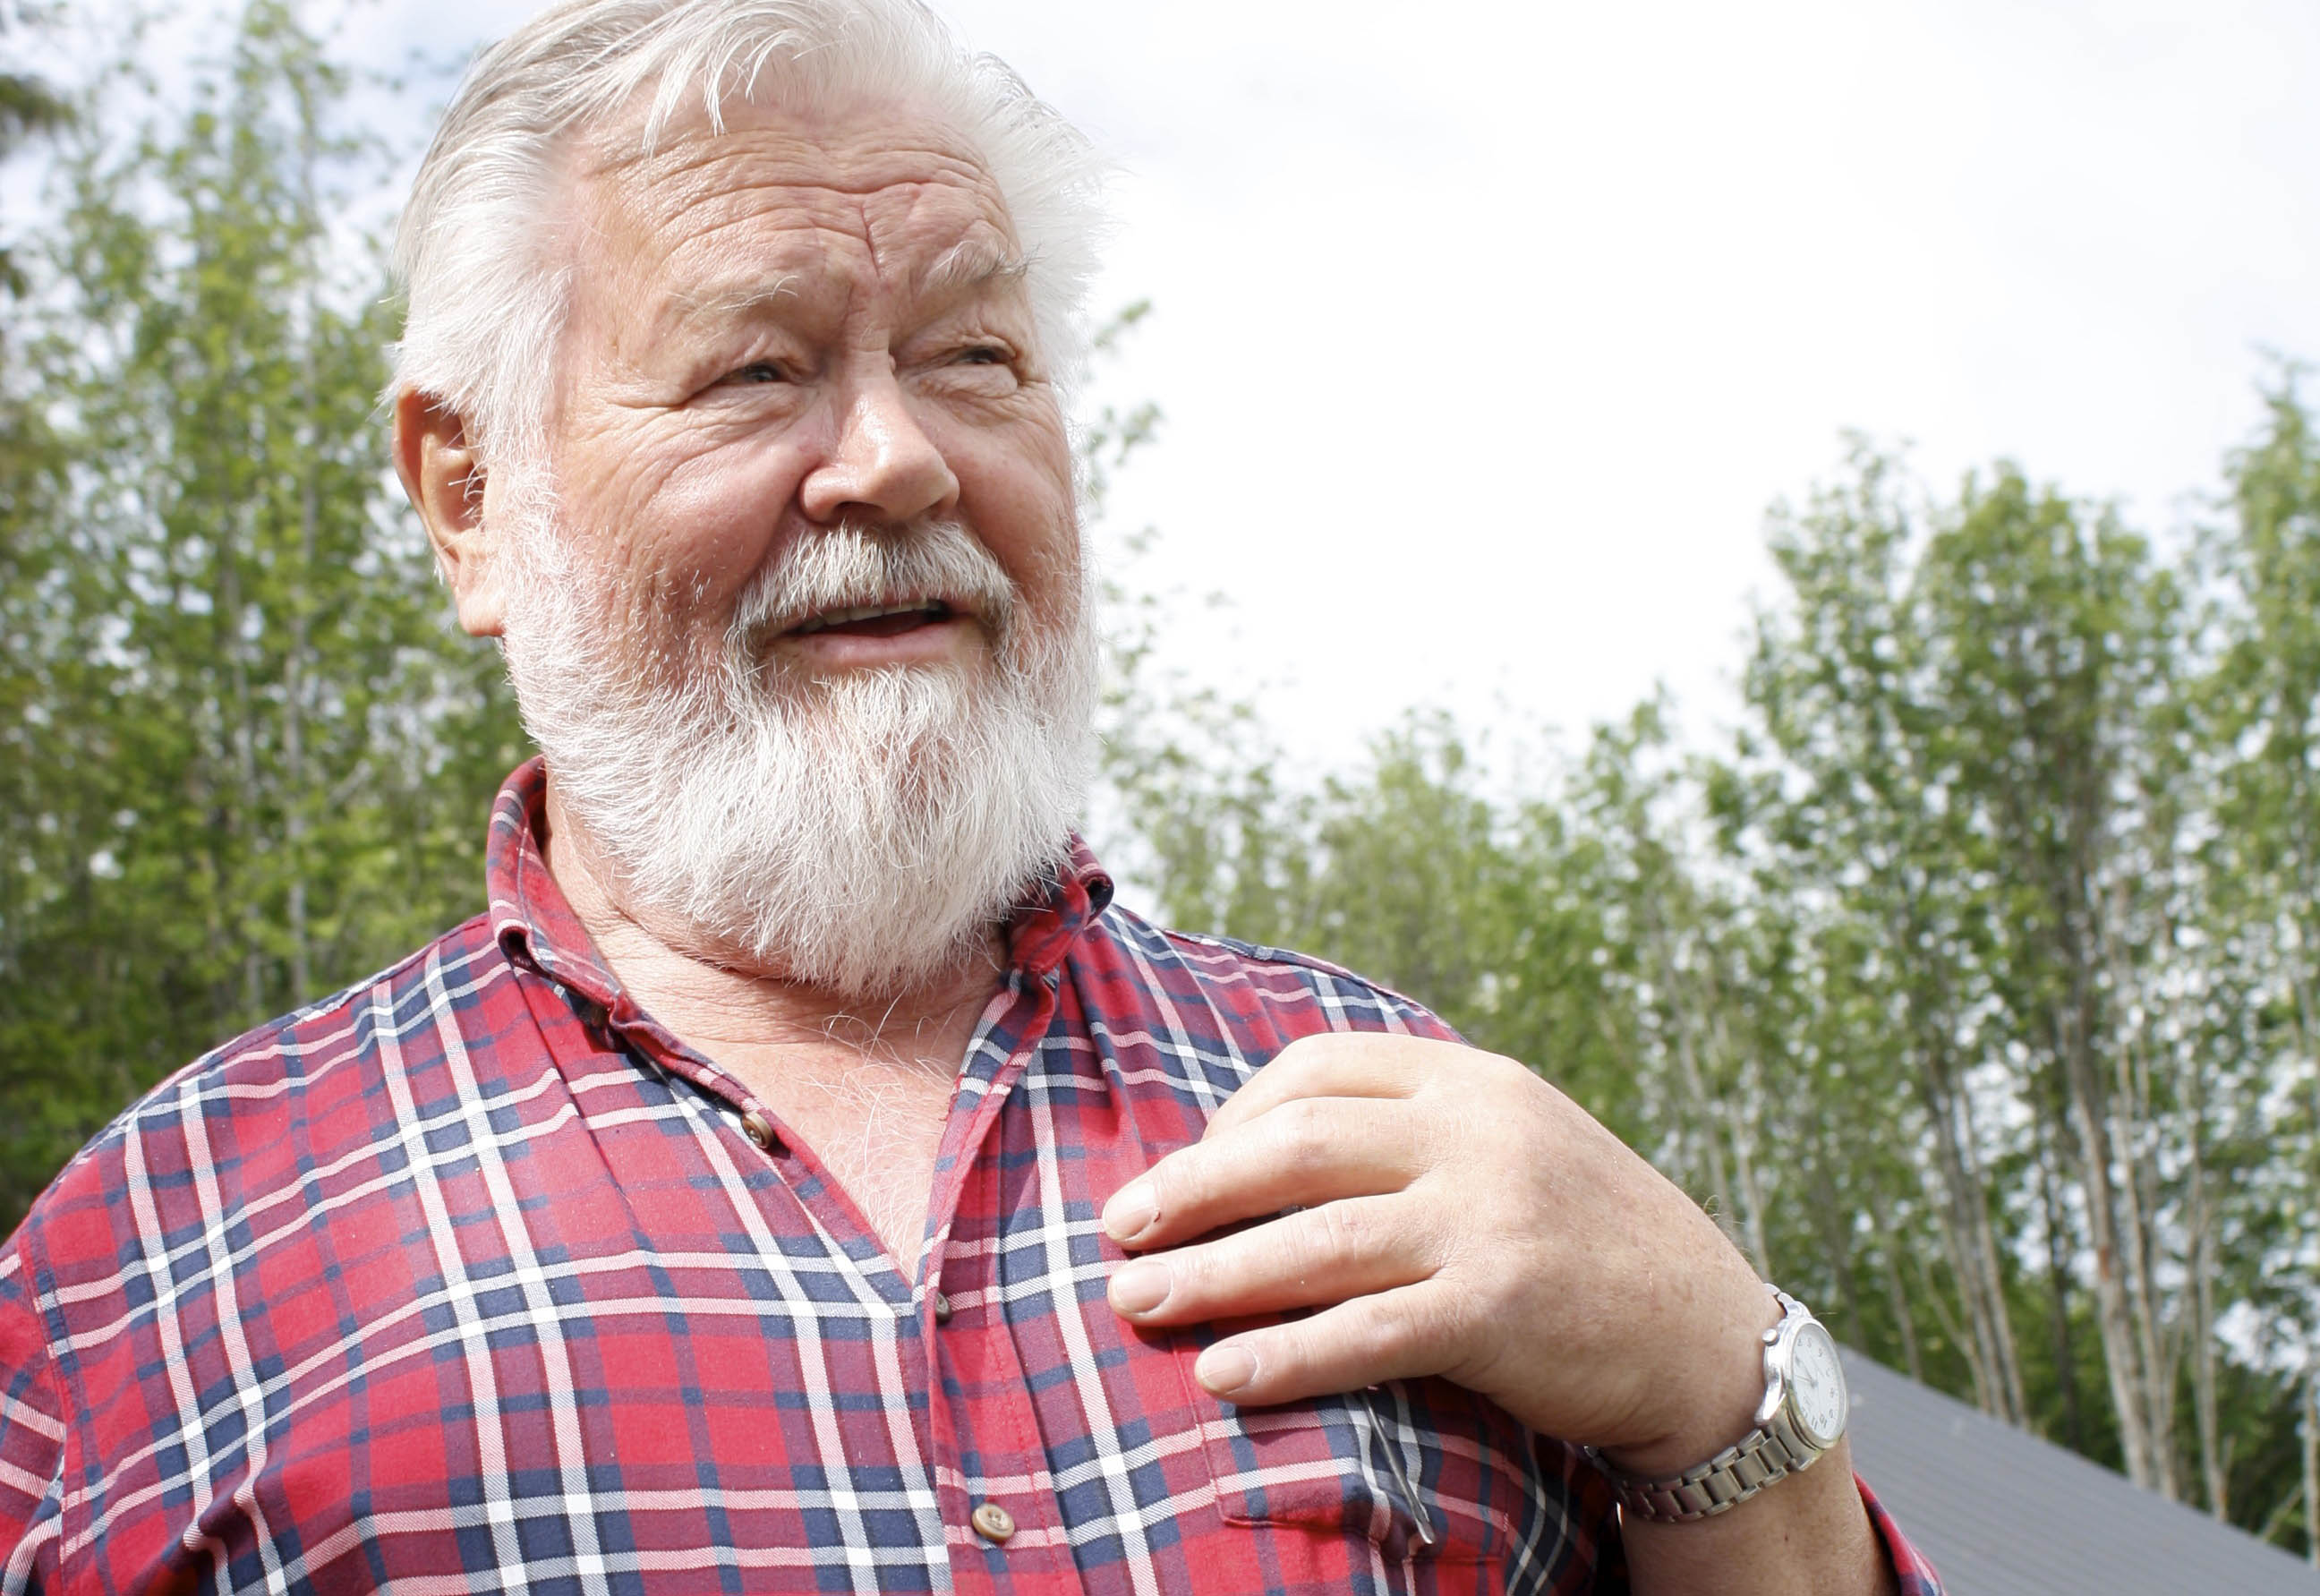 Morten Granås is one of the better known brewers in the area.